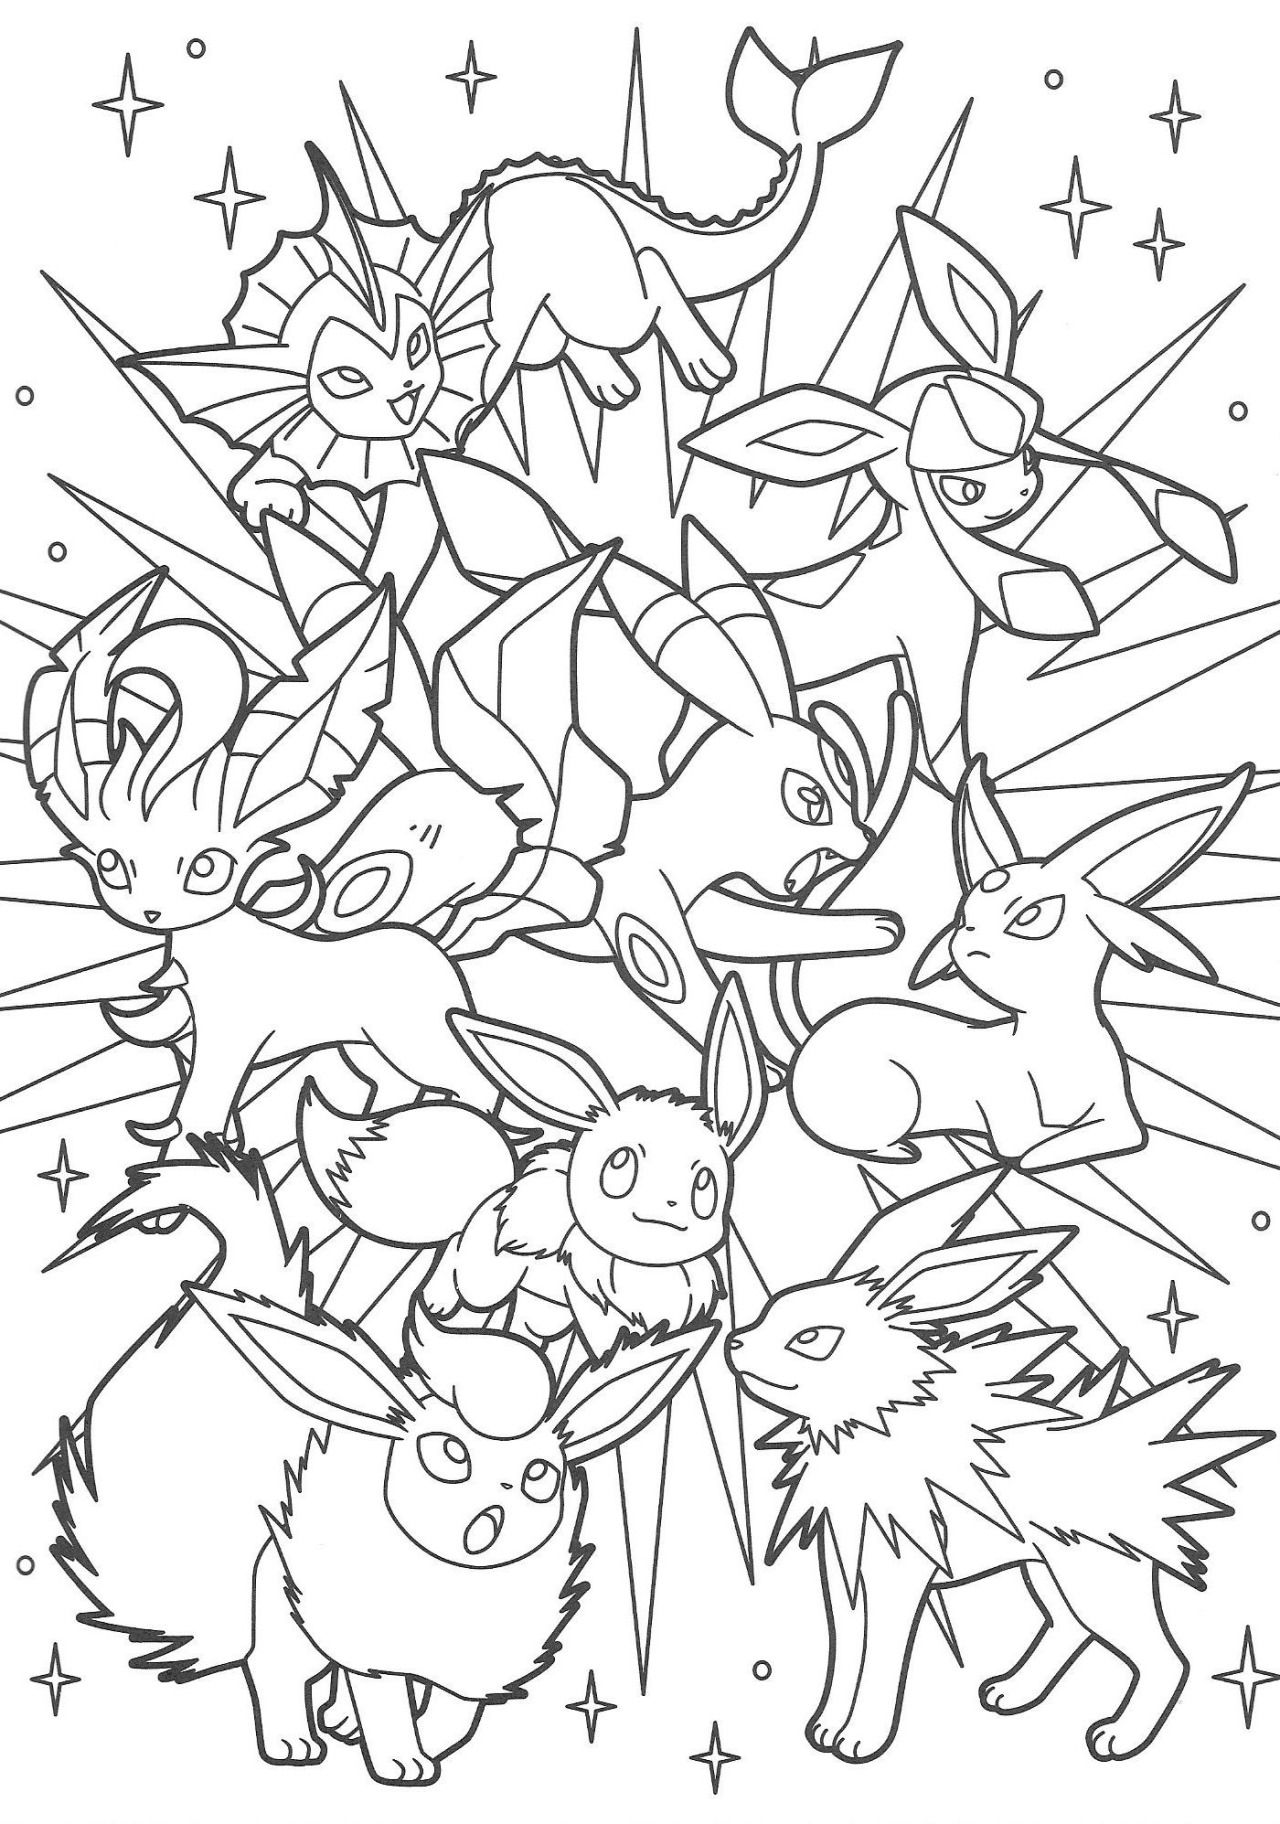 pokemon coloring pages eevee - pok mon scans from pacificpikachu 39 s collection coloring